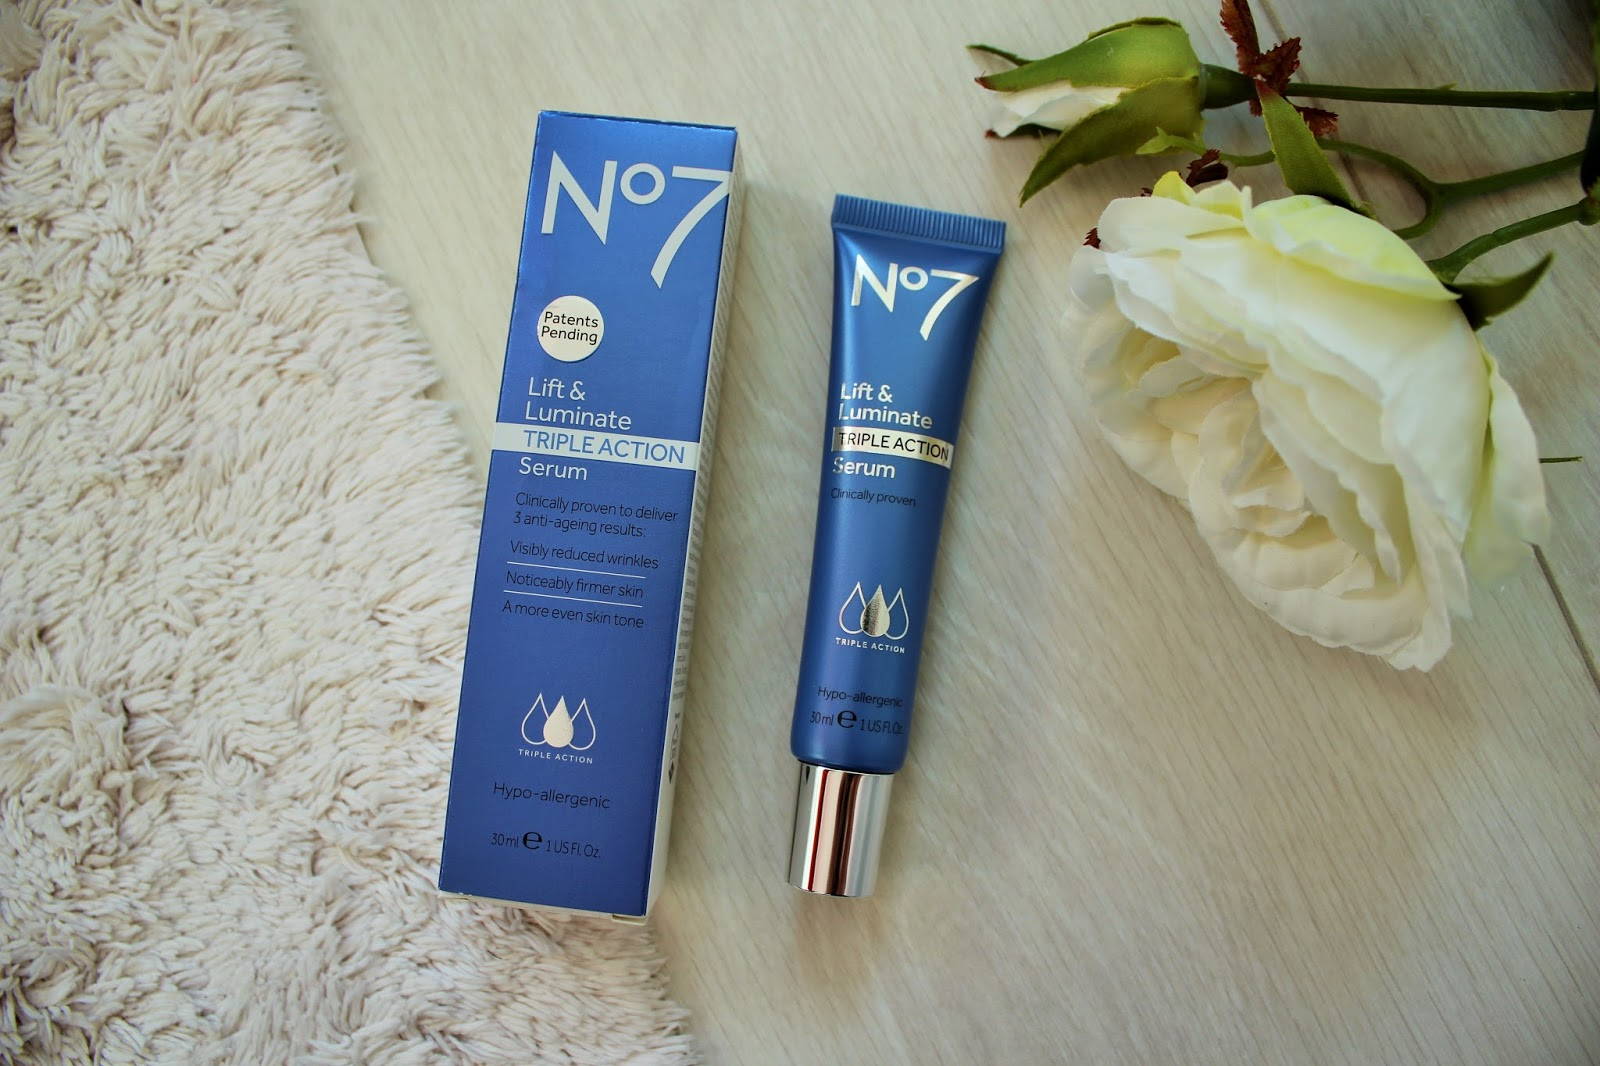 No7 Lift & Luminate Triple Action Range - First Impressions and Giveaway 3